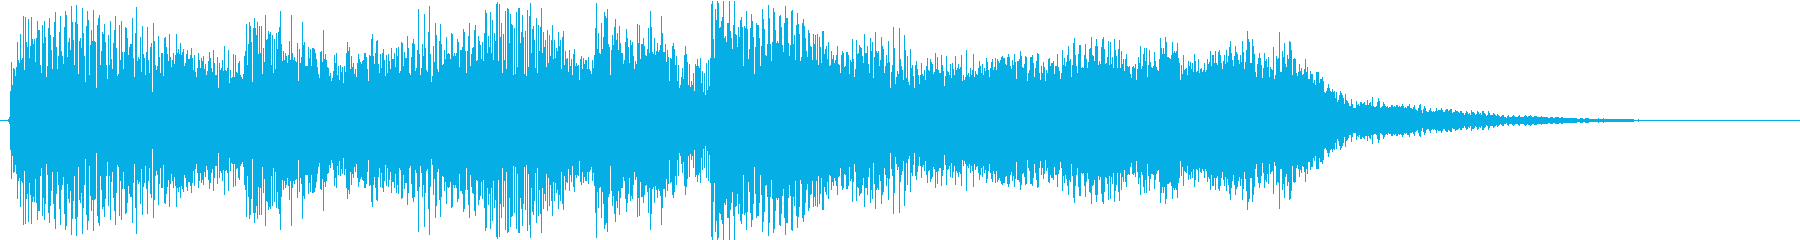 Beautiful scene change BGM for piano and stringed instruments's reproduced waveform